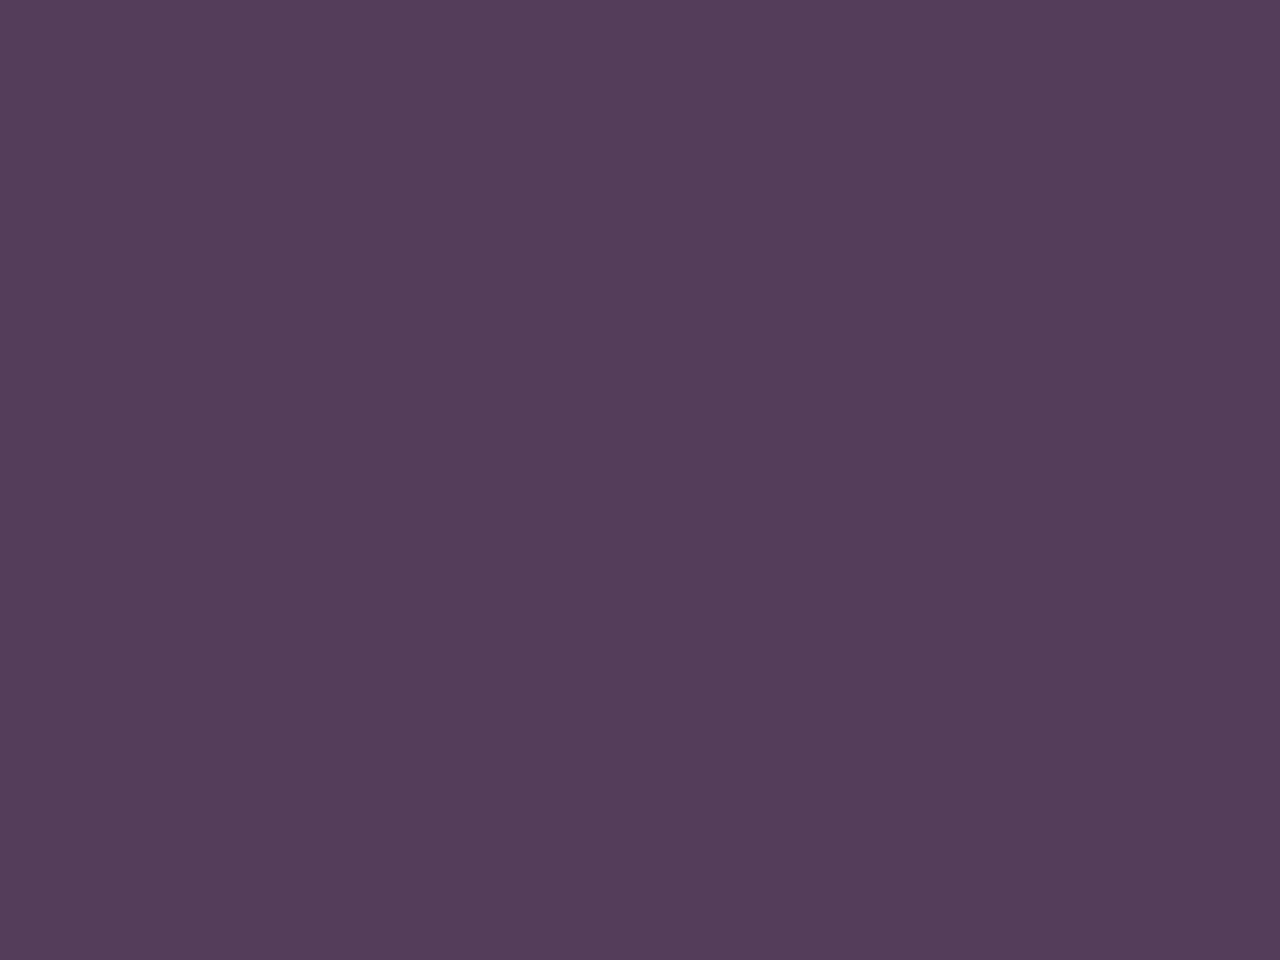 1280x960 English Violet Solid Color Background